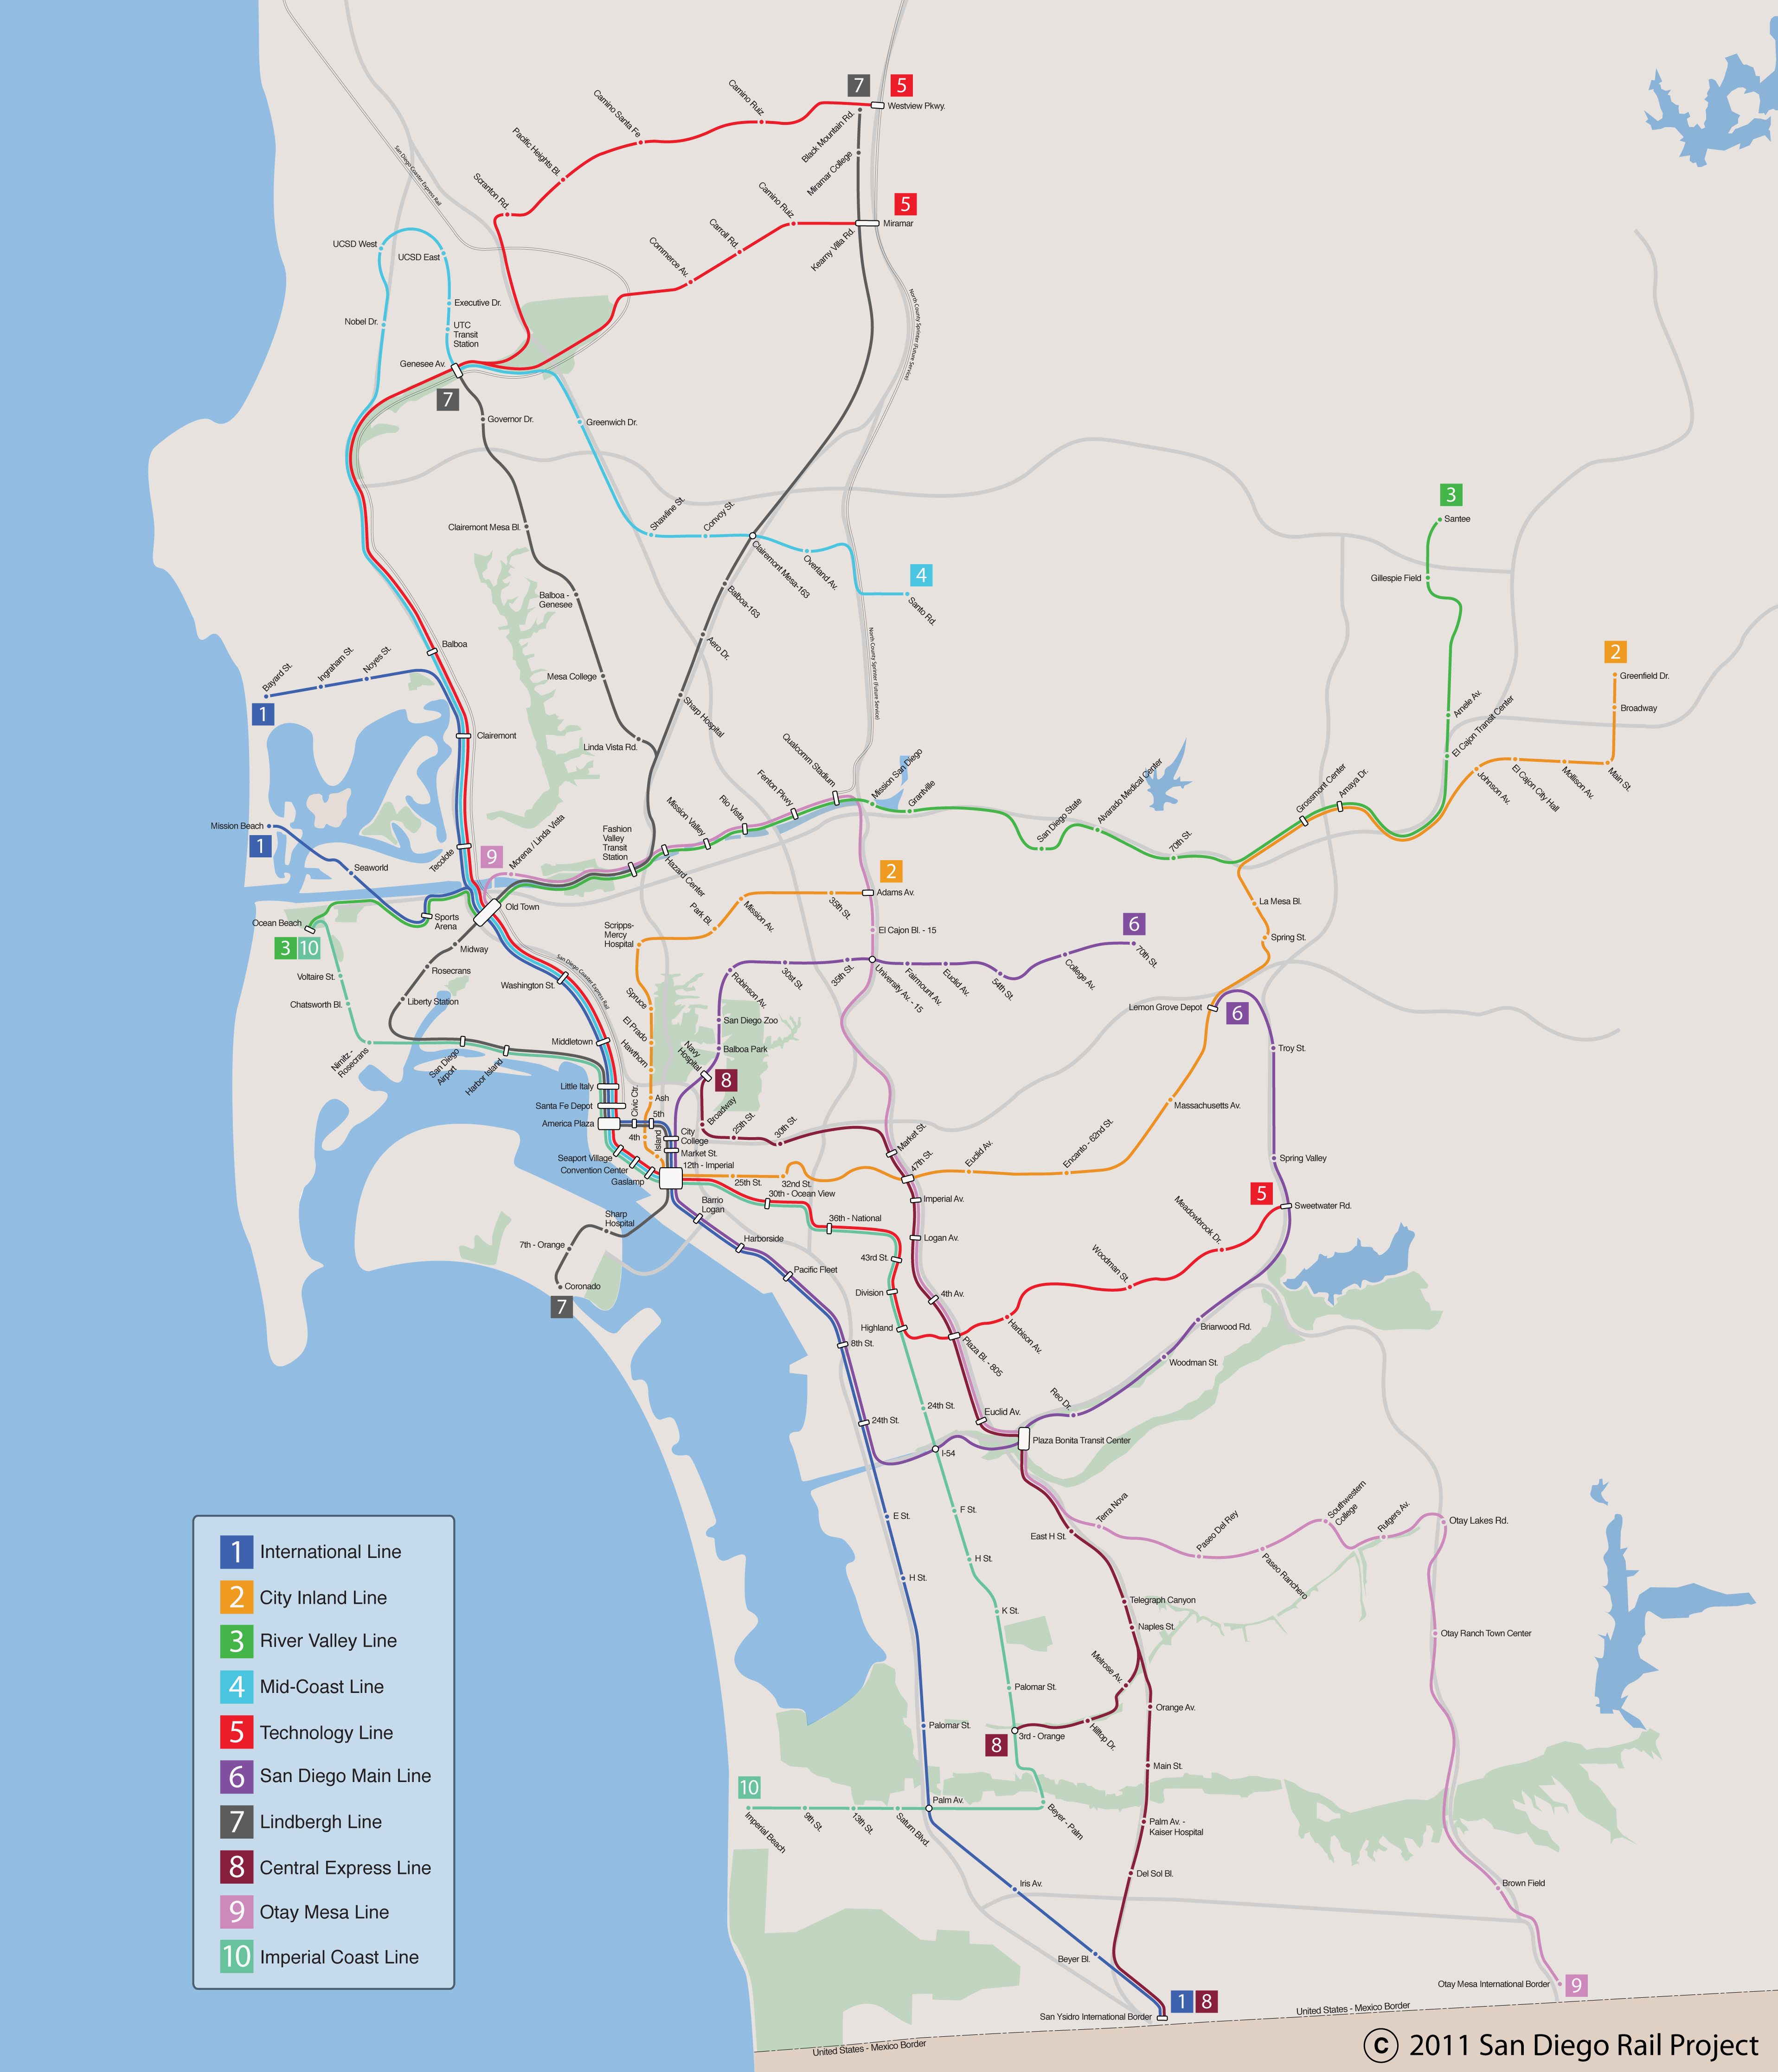 Trolley San Diego Map.Map Of San Diego With A Competent Transit System Sandiego